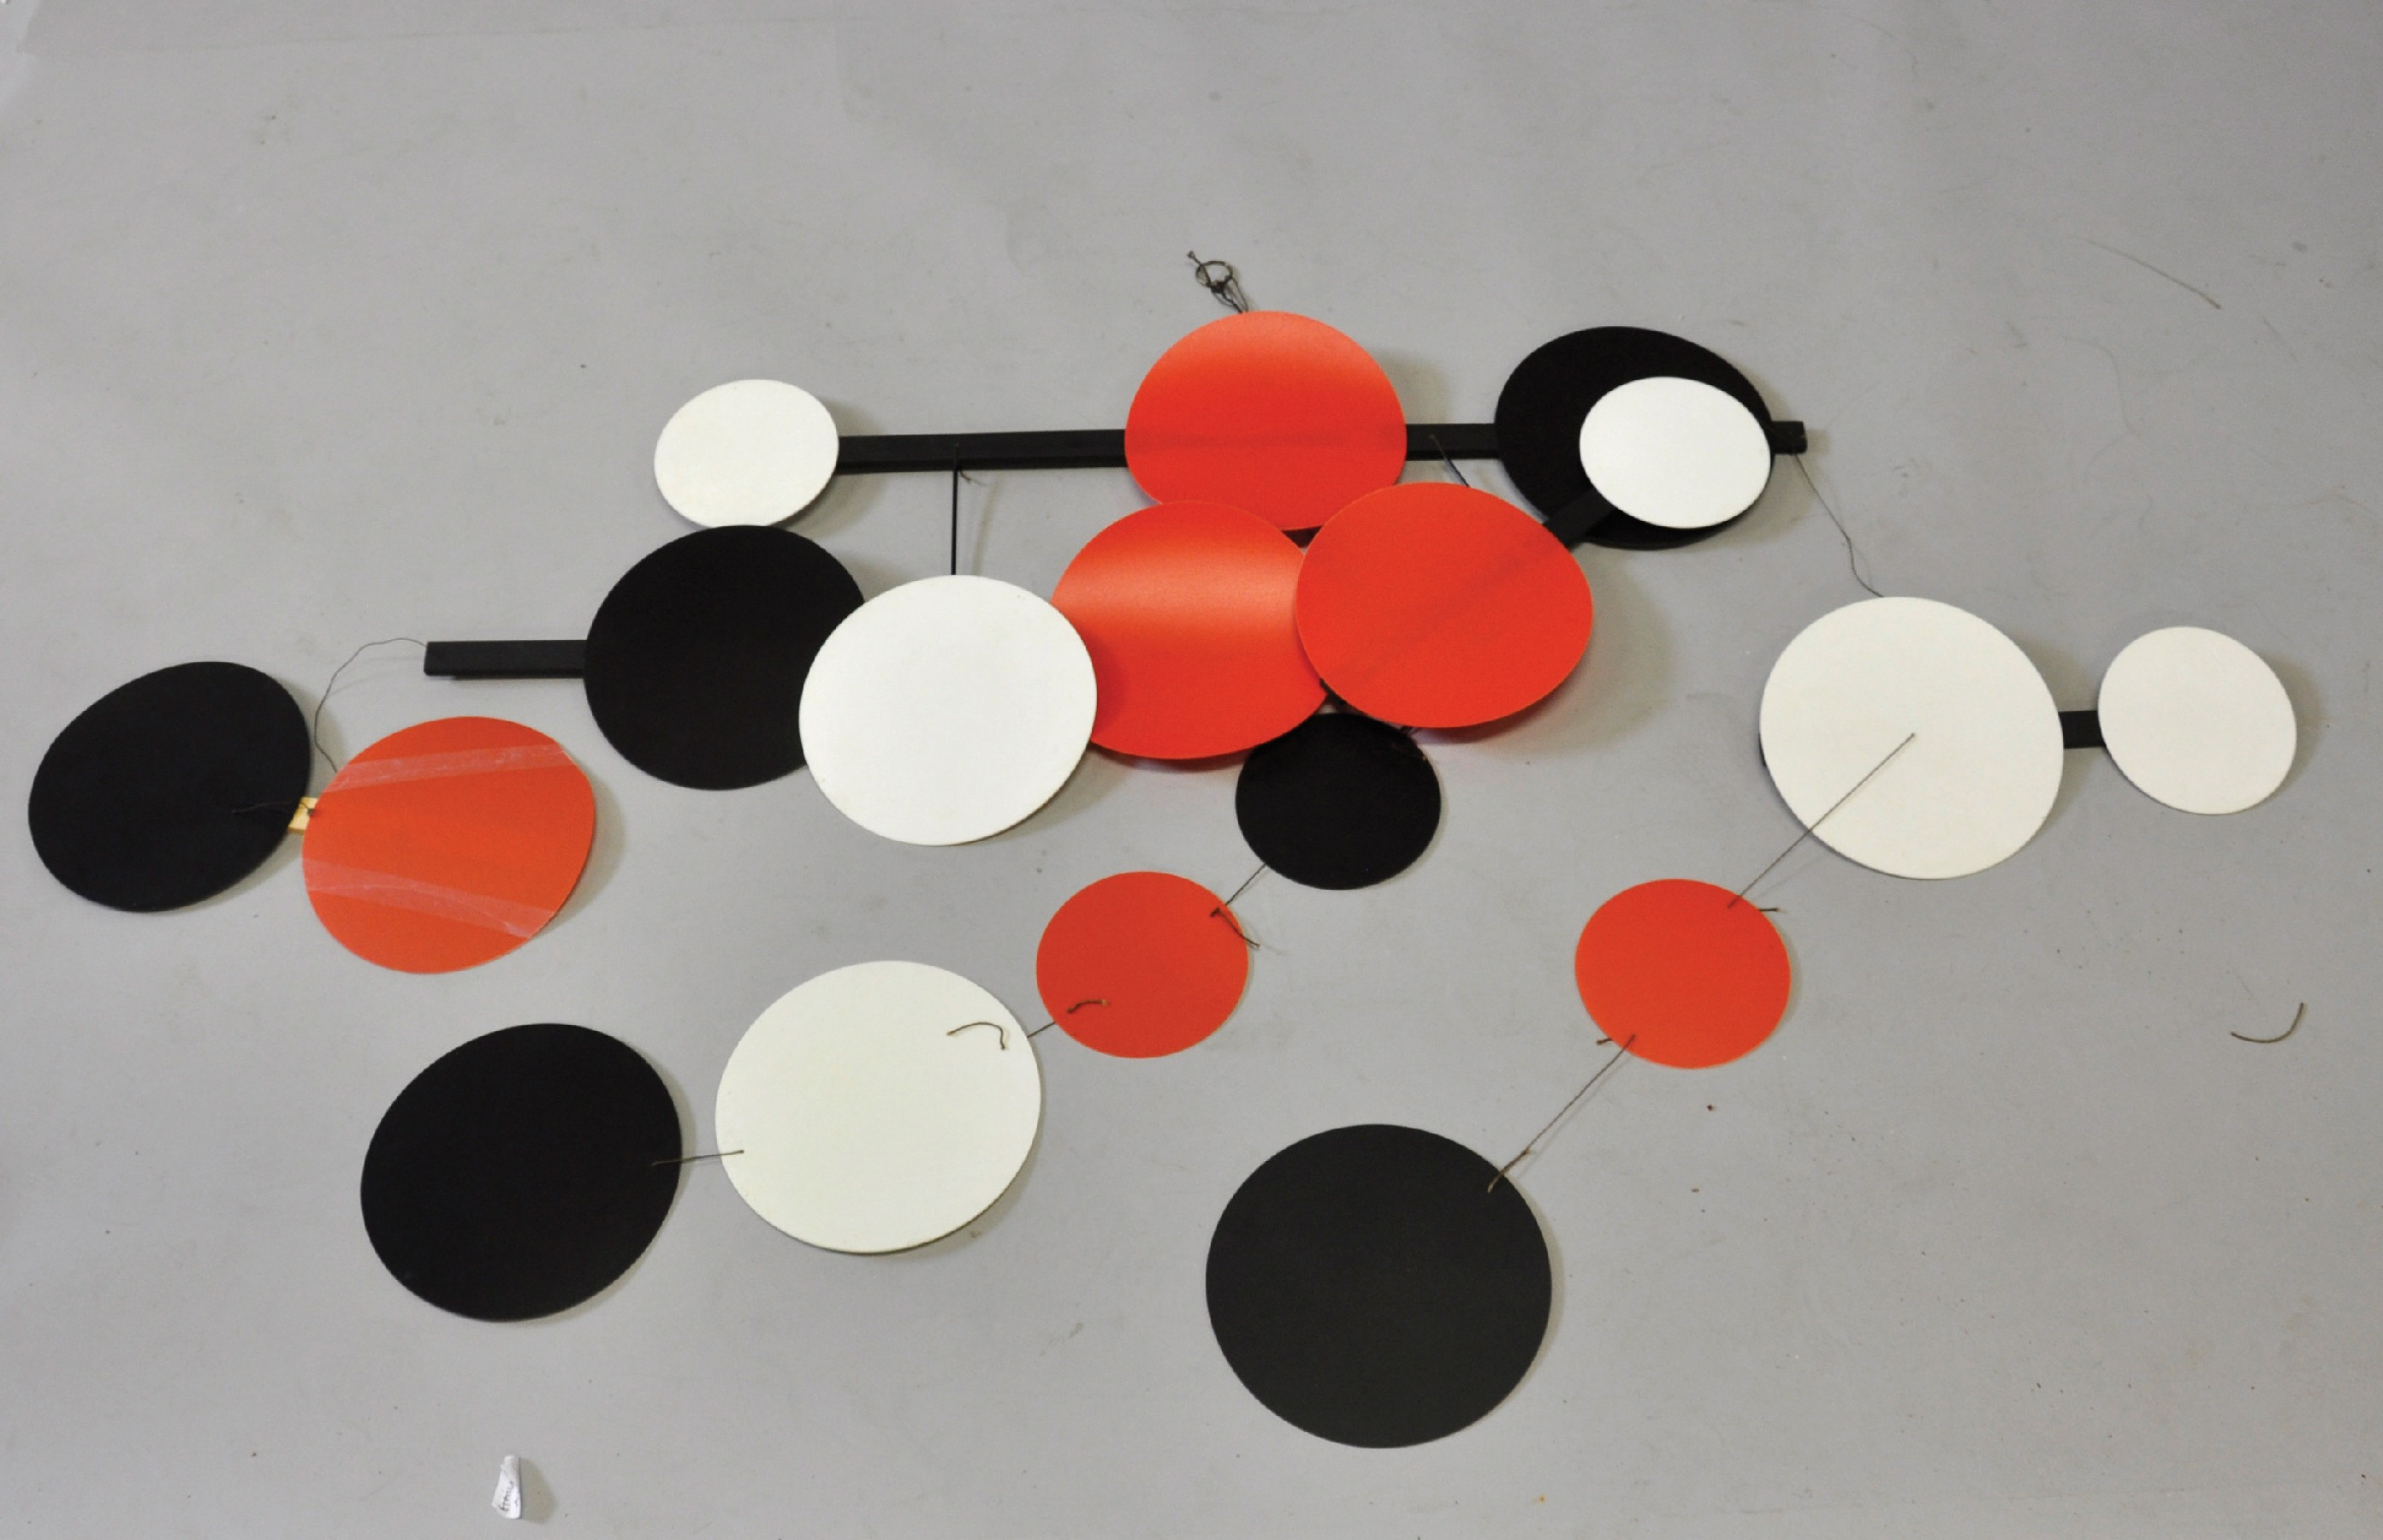 Terry Frost (1915-2003) British. 'Black, Red and White Circles', a Mobile of Eighteen Circular